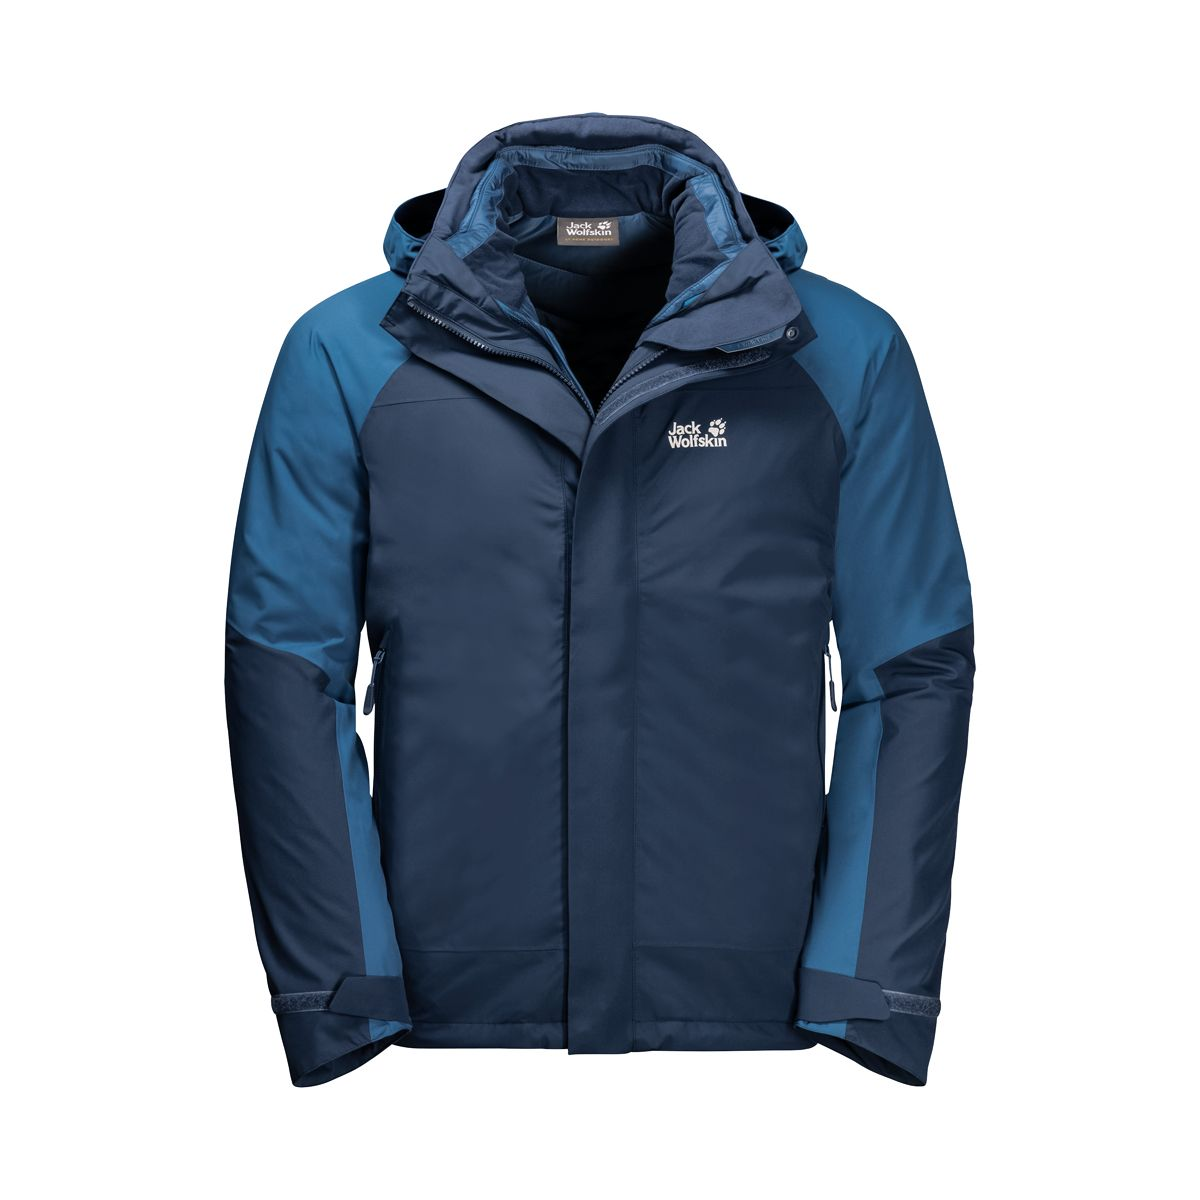 STETING PEAK JACKET M 3in1